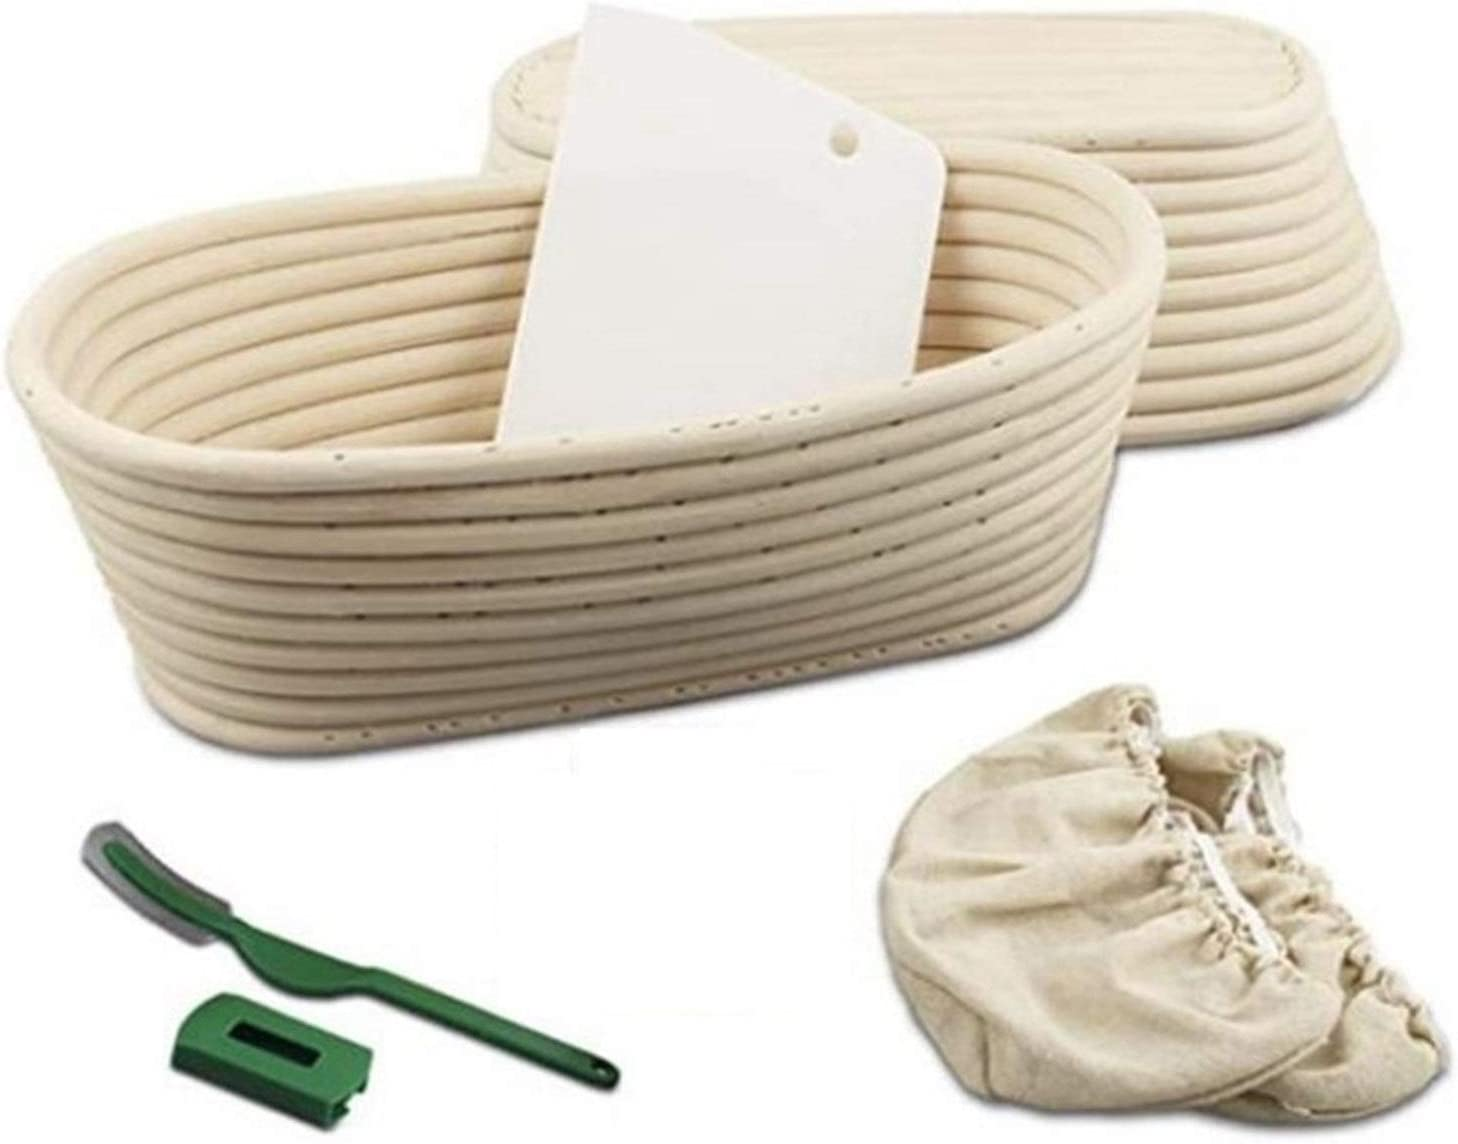 YWSZY Bread Proofing Baskets 1 of Set 10 Inches Super Special SALE ...